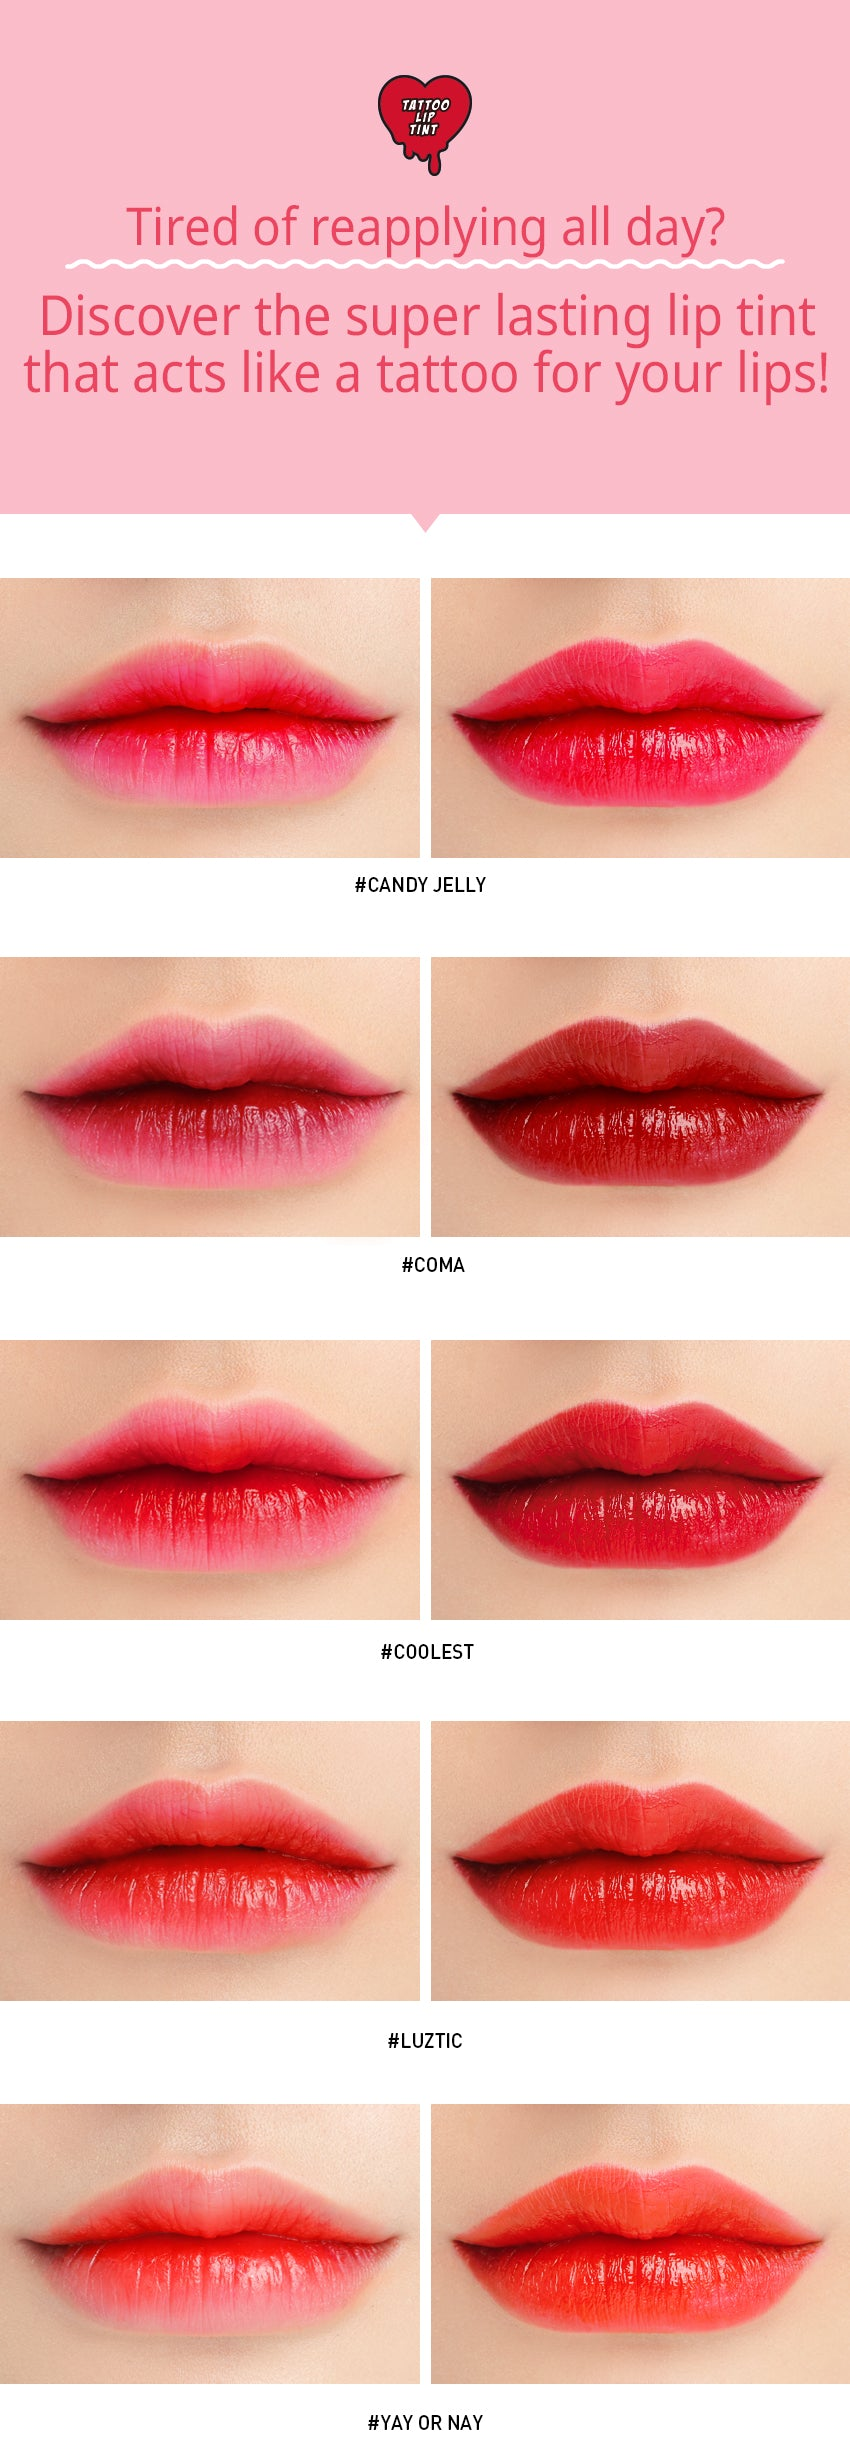 3ce_tattoo_lip_tint_yay_or_nay-12.jpg